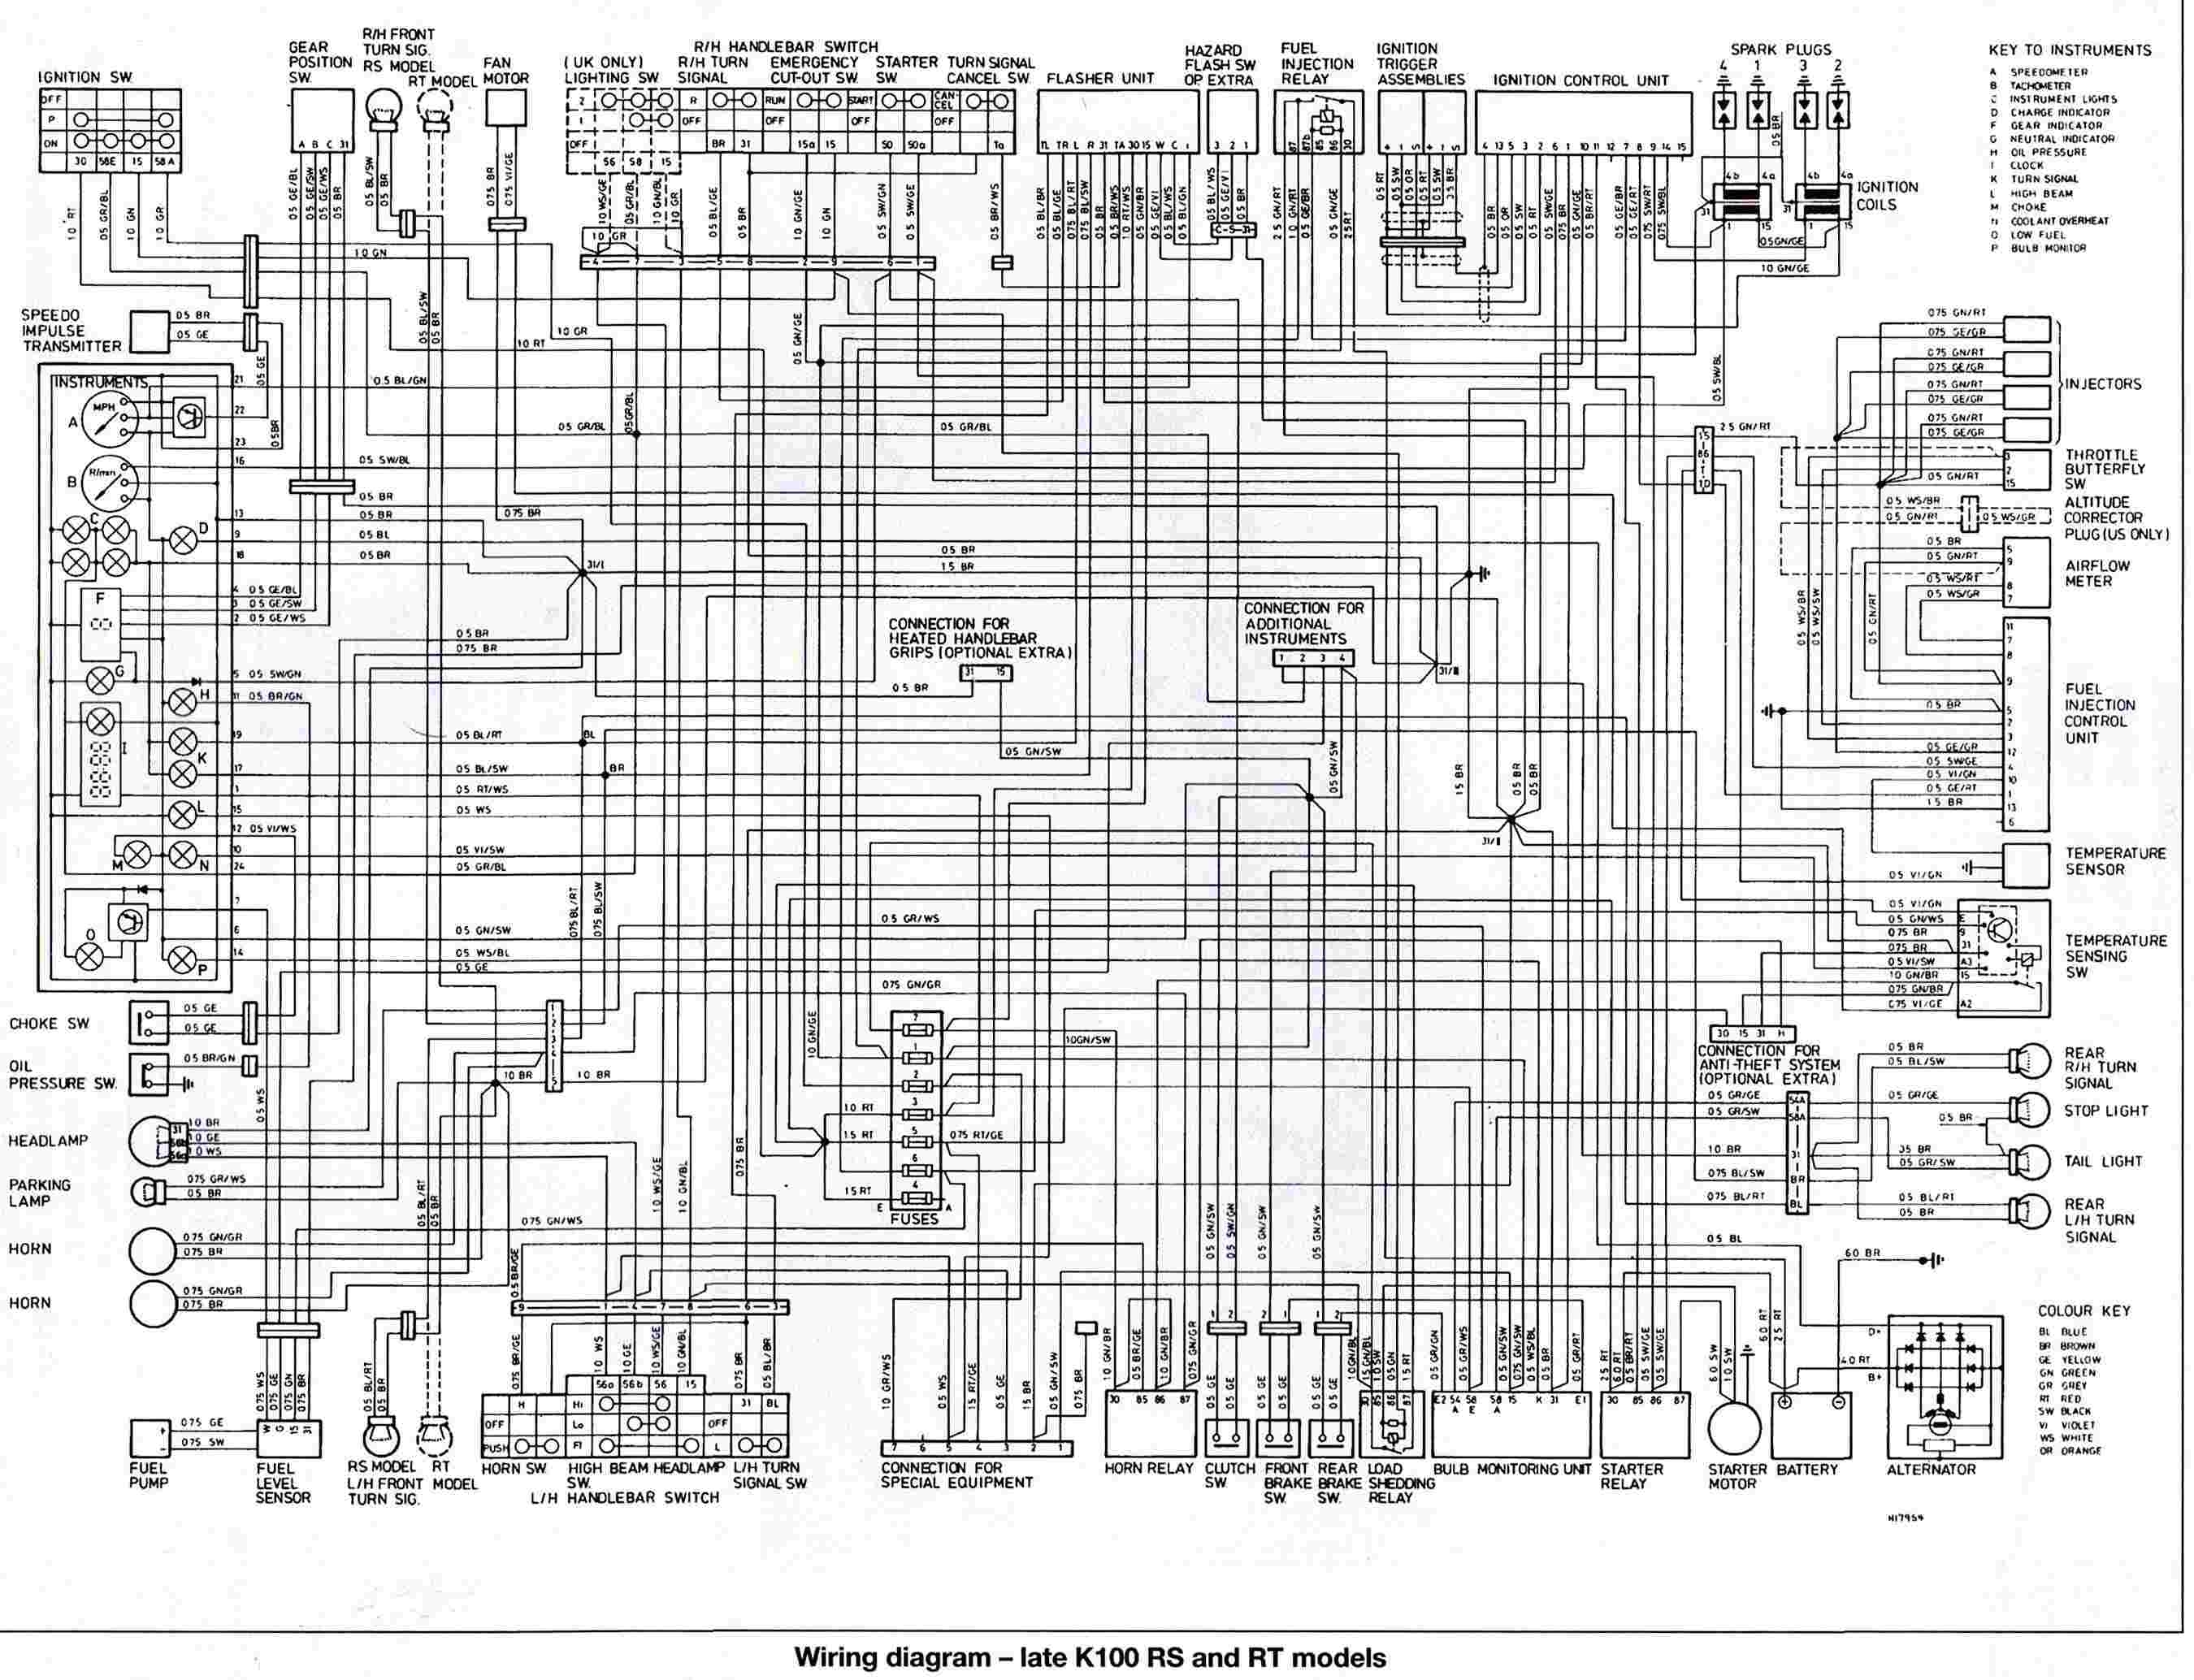 Free Bmw Wiring Schematics Z4 Stereo Diagram Wds Auto Electrical Rh Dreamplanet Me Jeep Radio